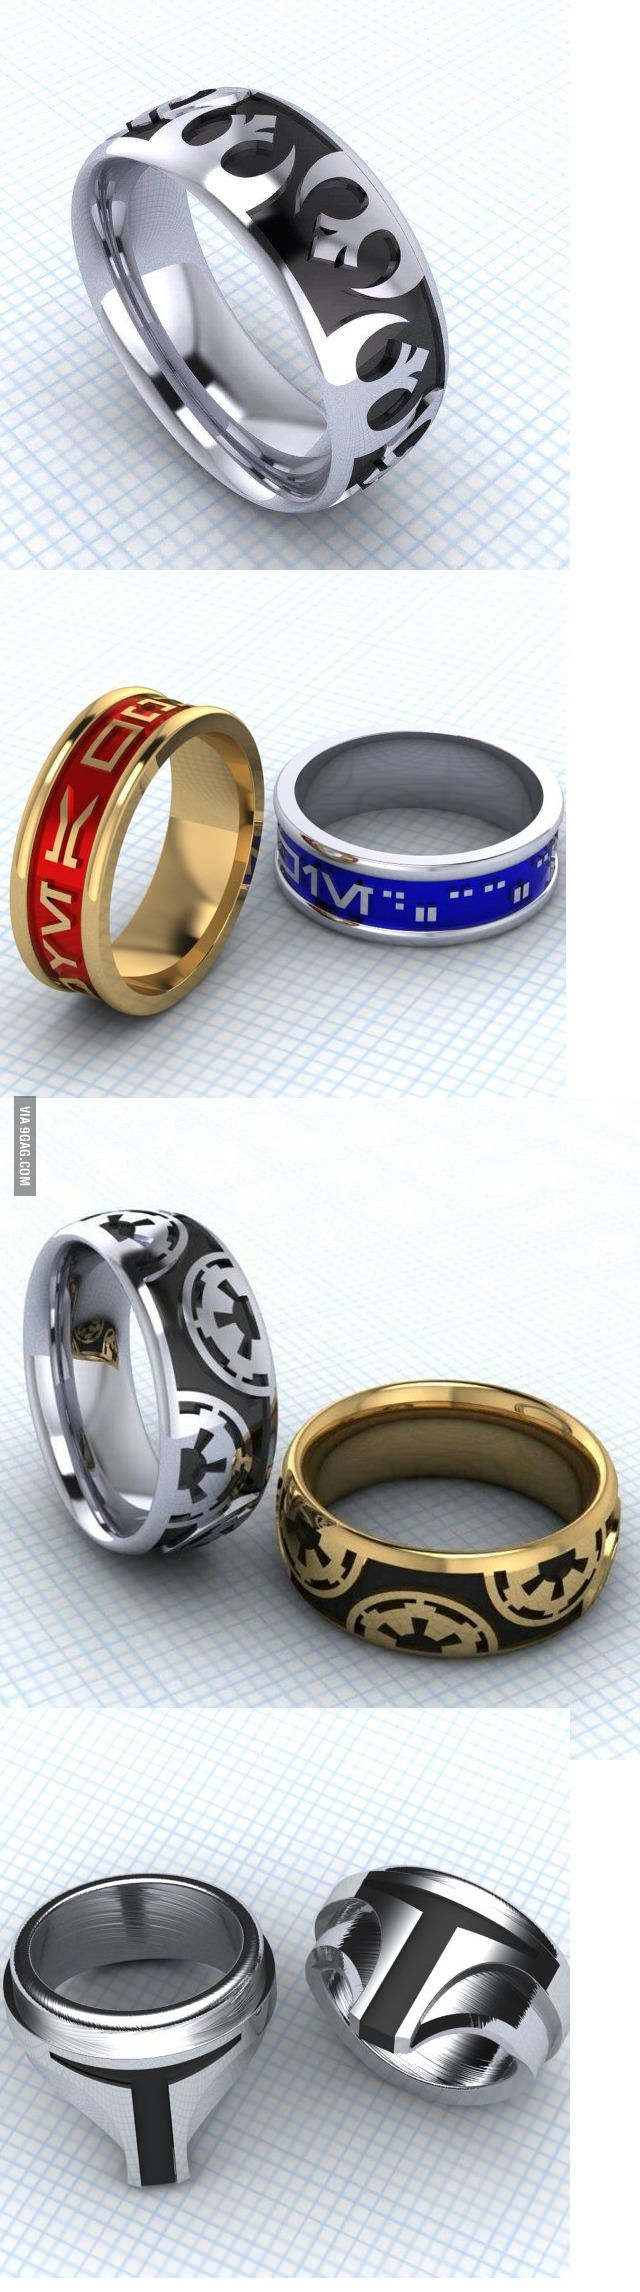 I Never Liked The Idea Of Marriage But, As A True Geek, These Rings Made Me  Reconsider